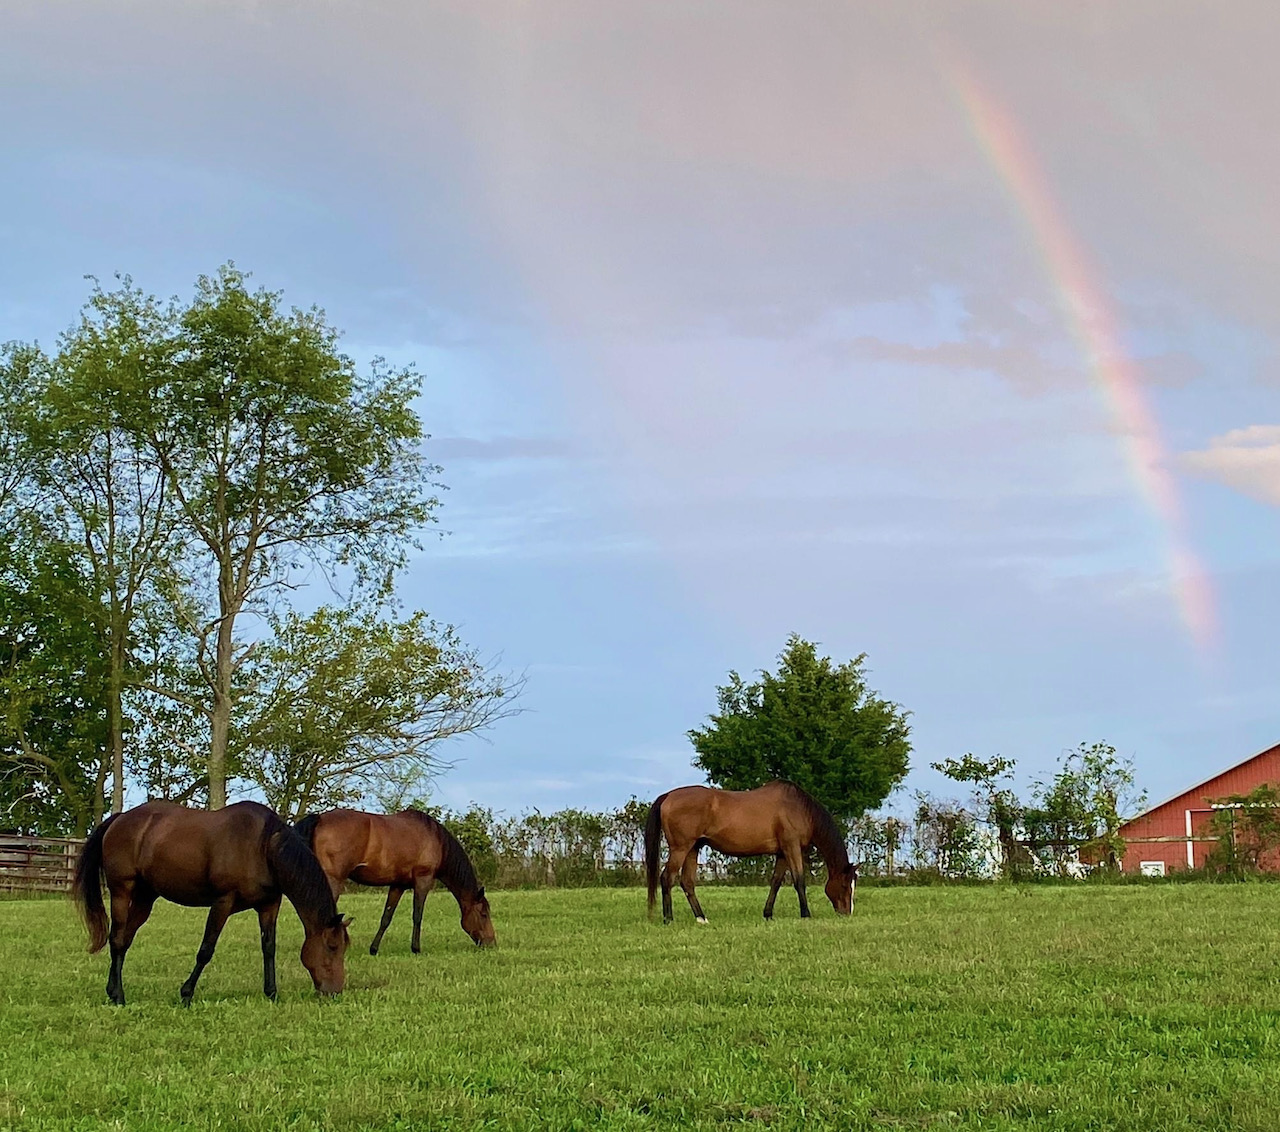 Horses and Rainbow - Sept 2020